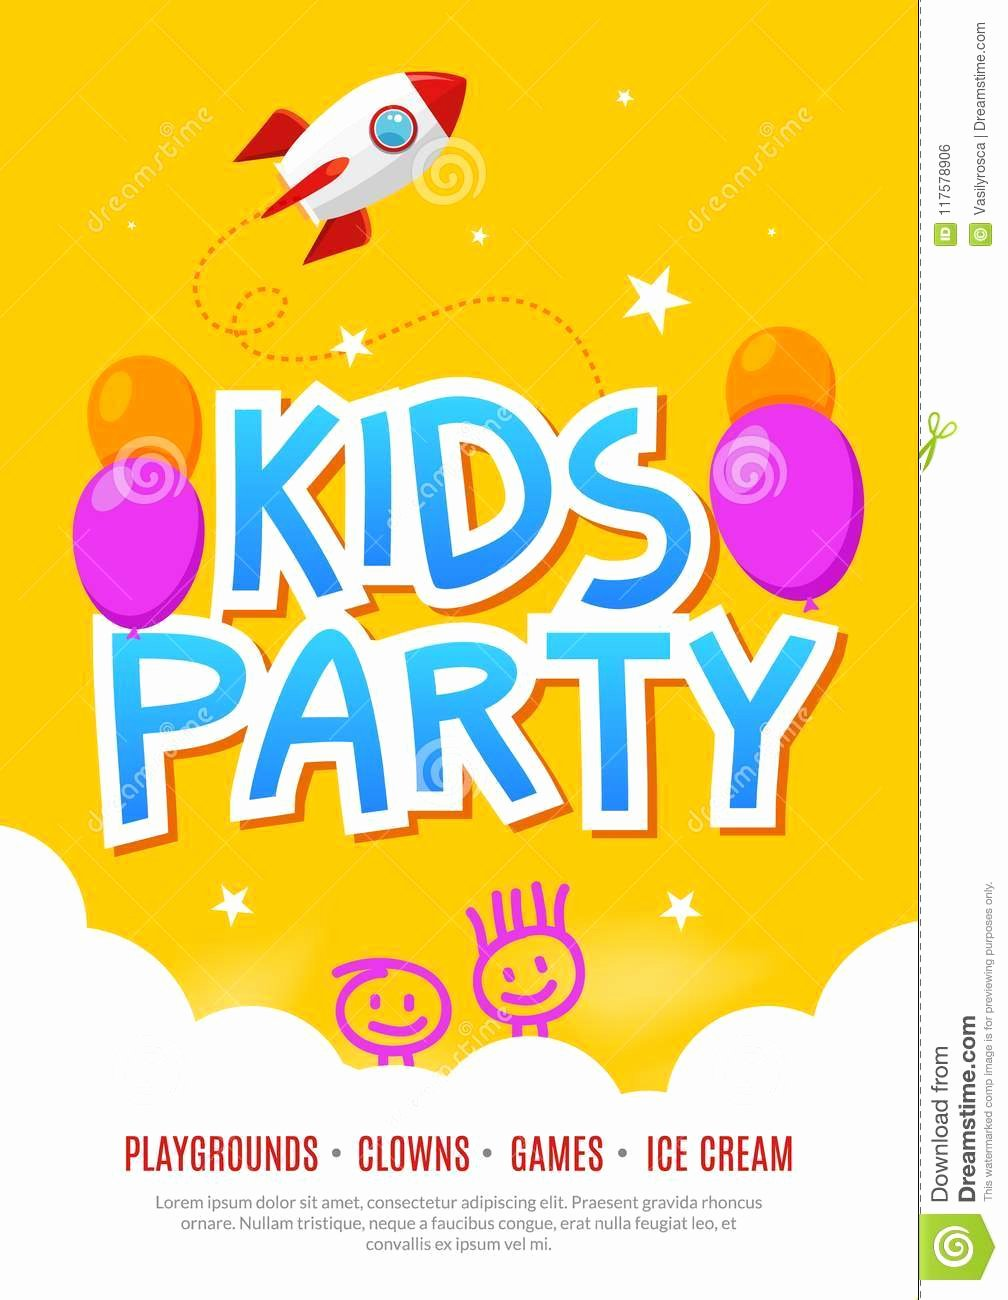 Funny Posters for Kids Beautiful Kids Fun Party Celebration Flyer Design Template Child